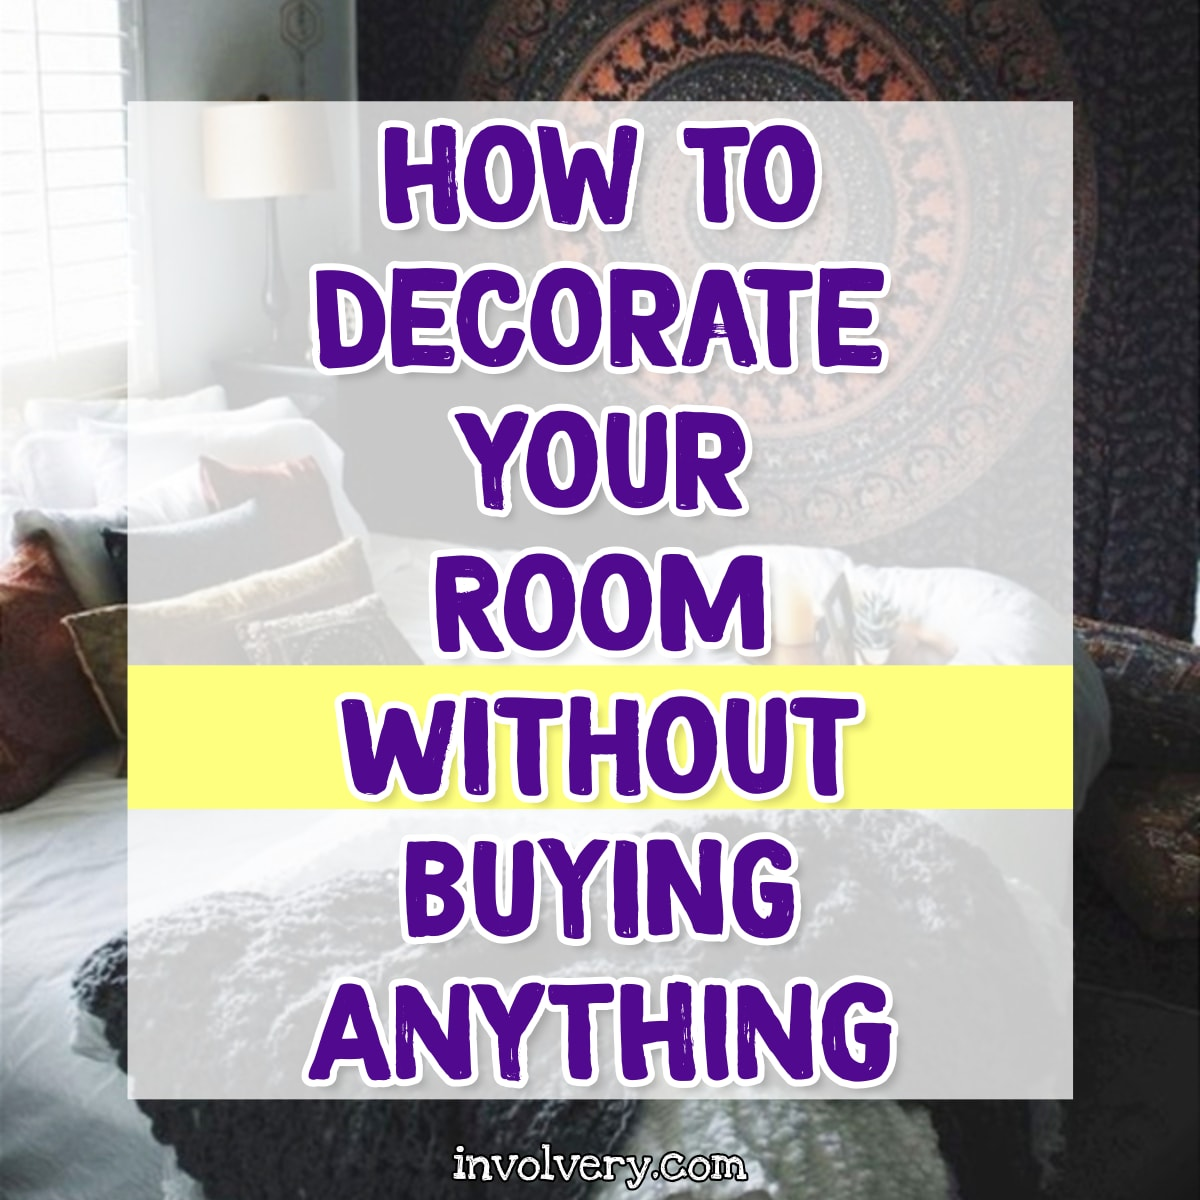 how to decorate your room without buying anything - 30 ways to decorate your room for free